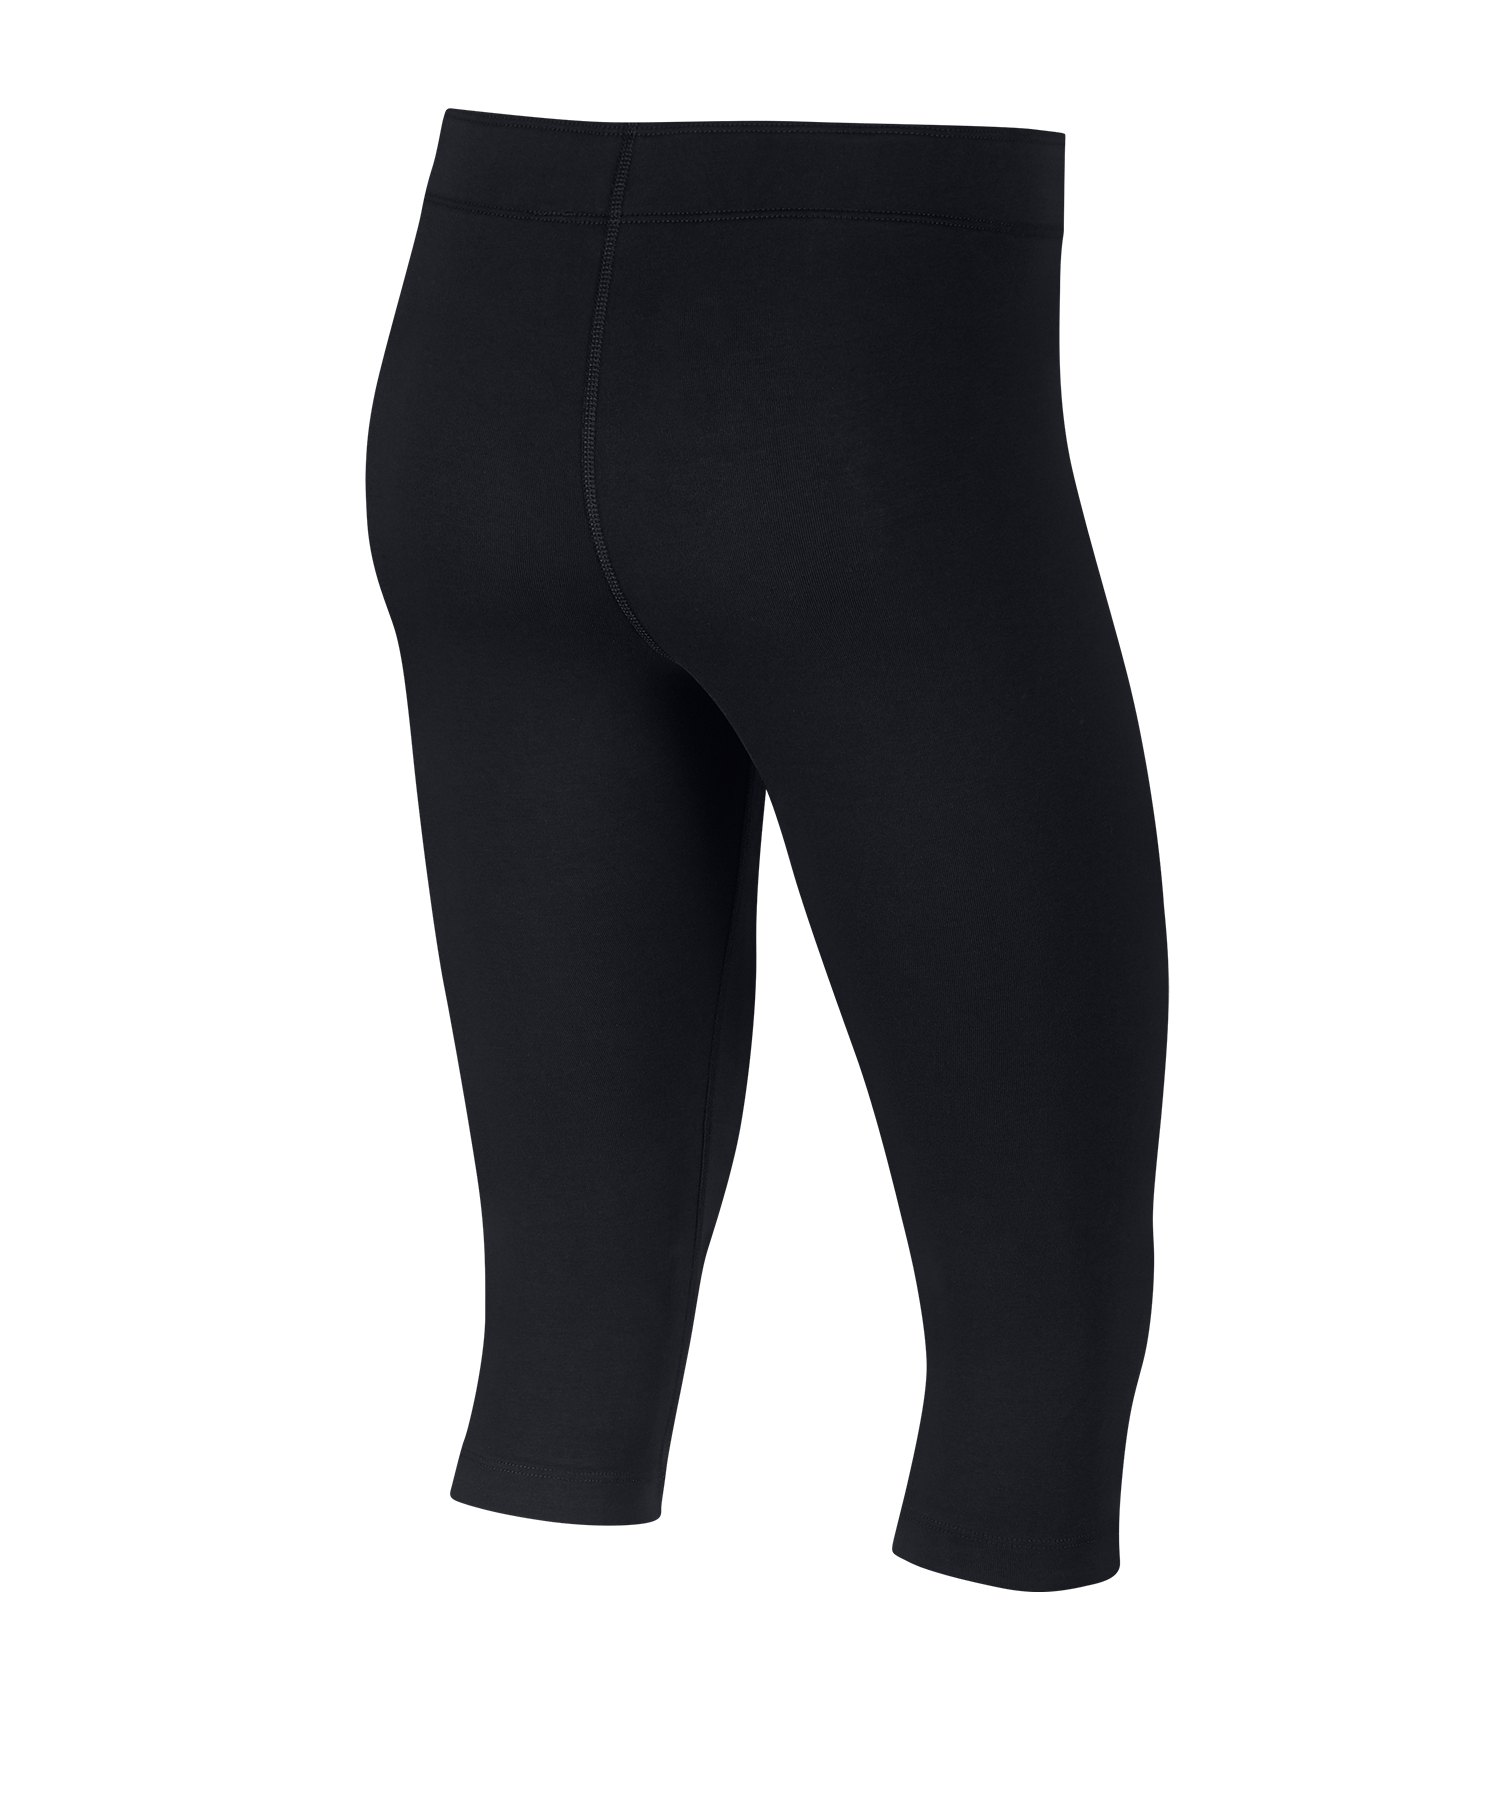 nike leggings damen weiß